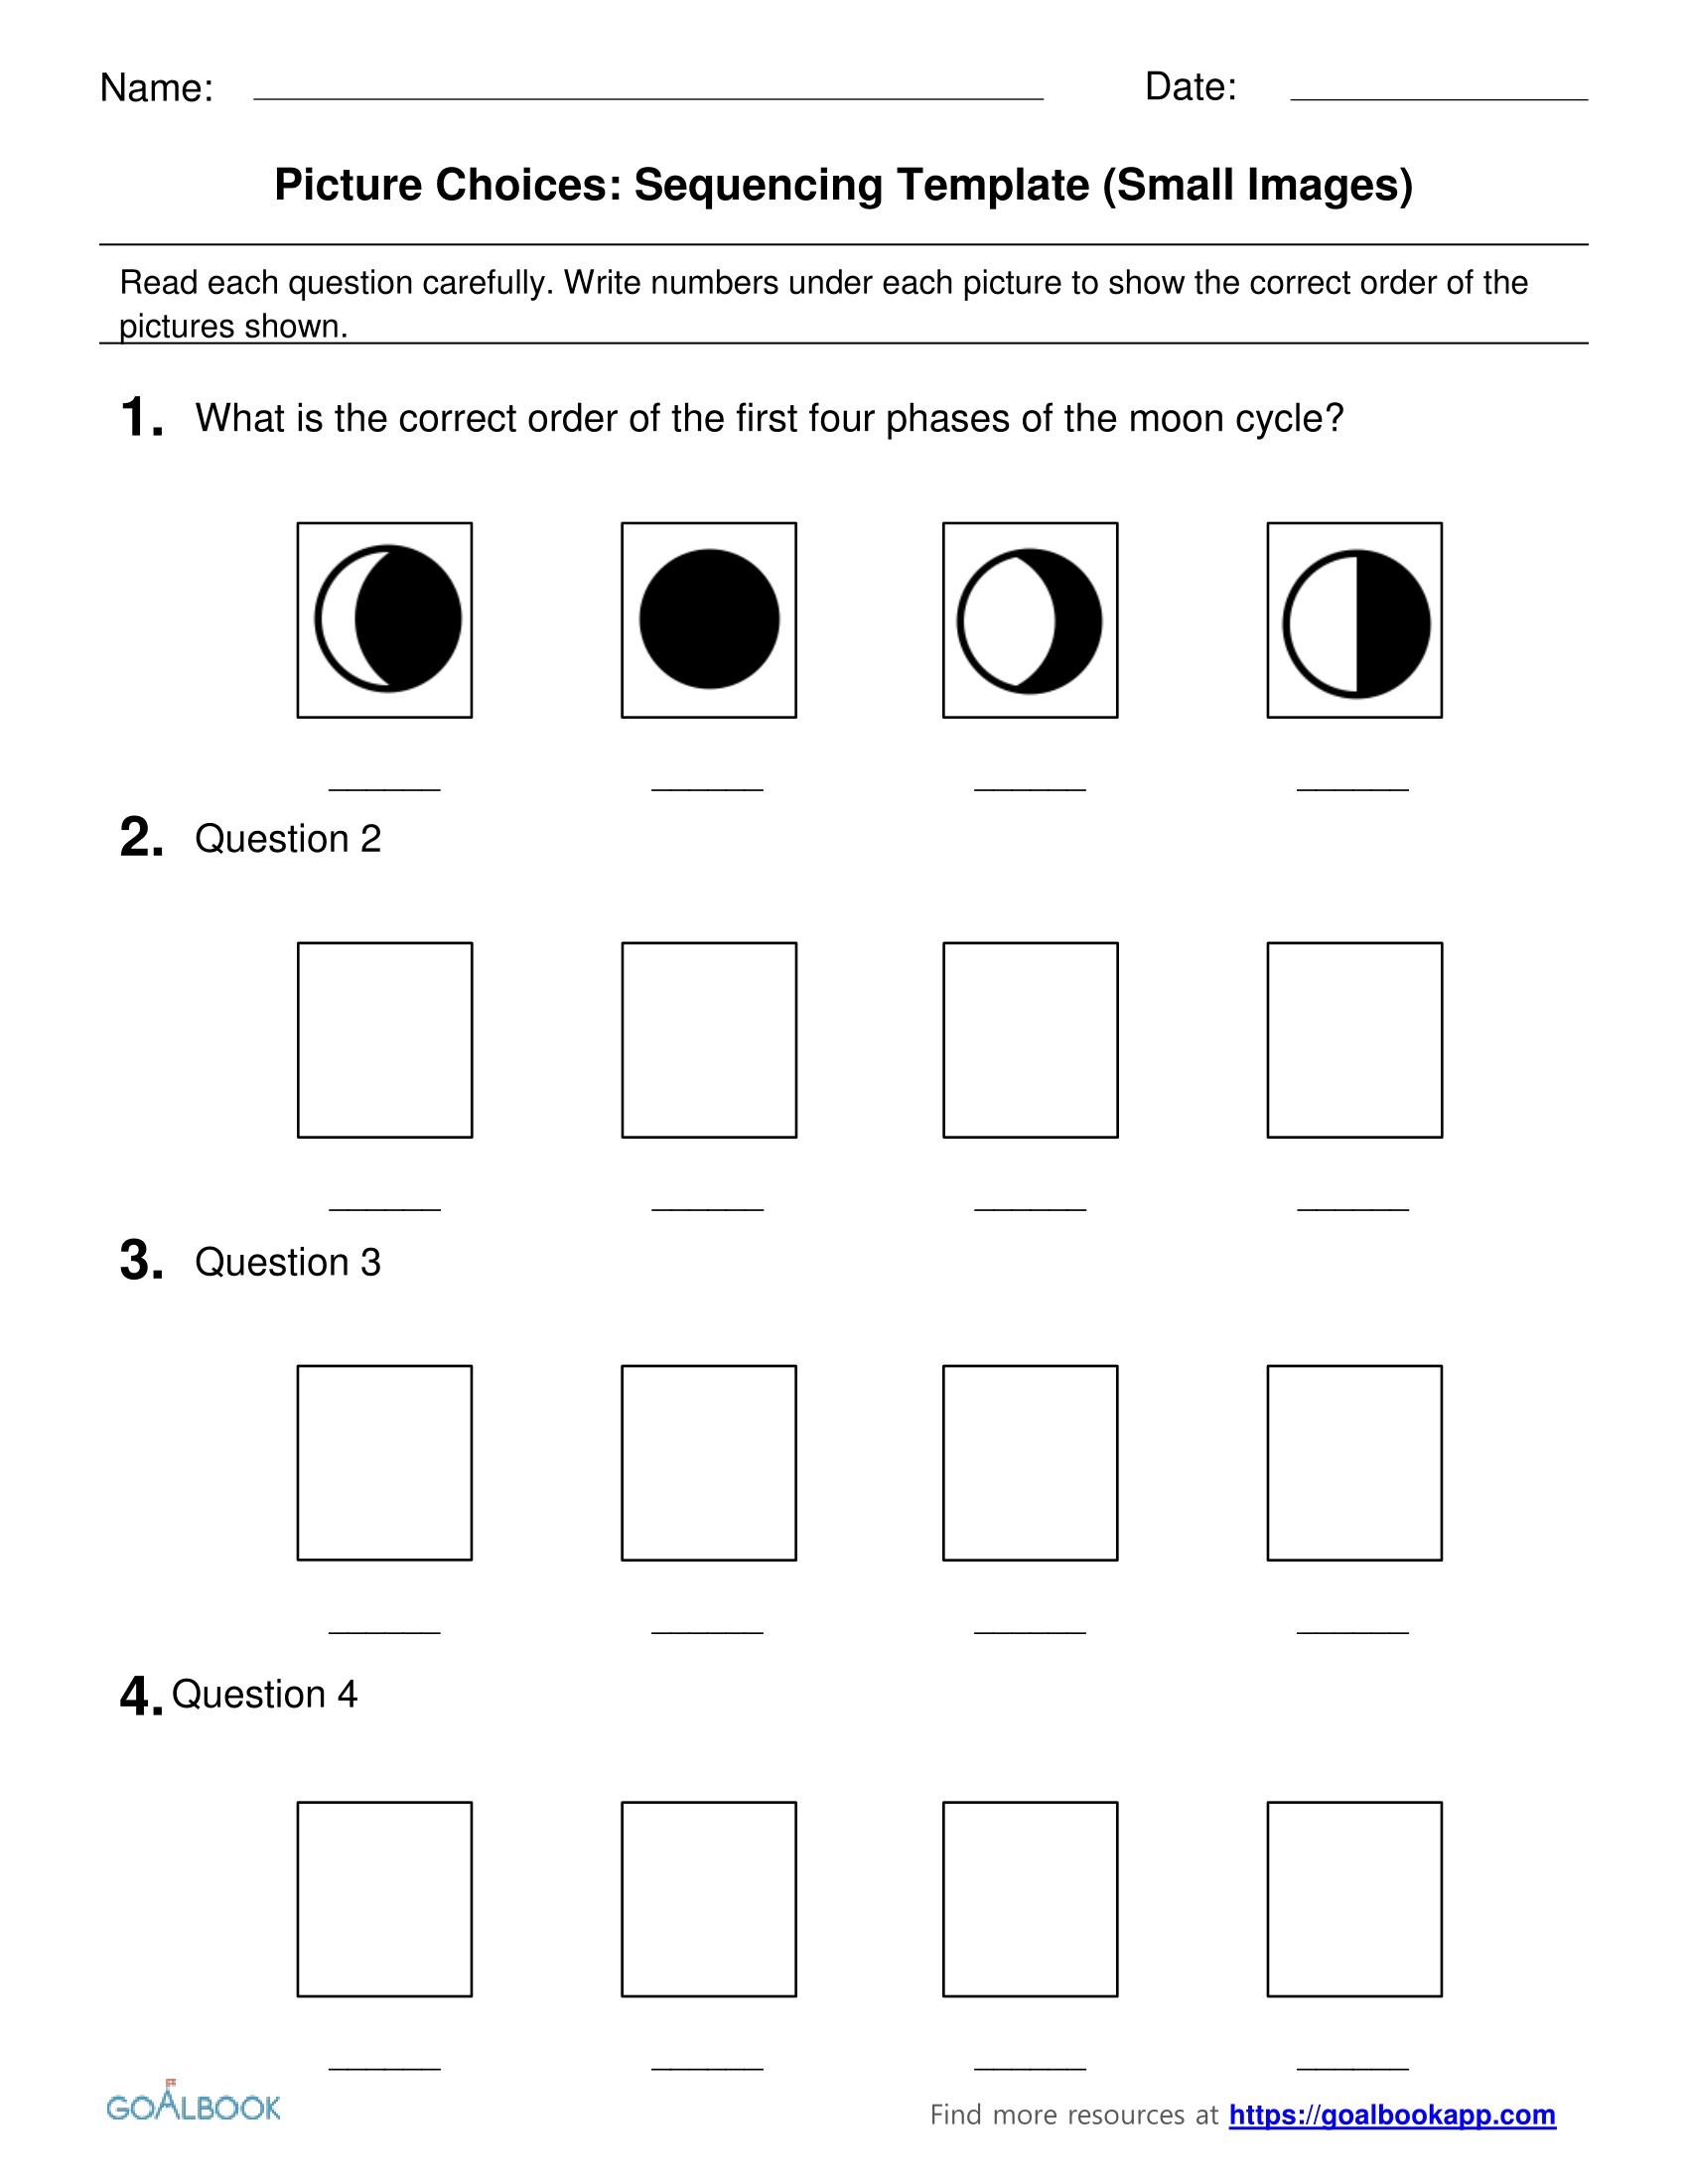 Sequencing Picture Choice Templates